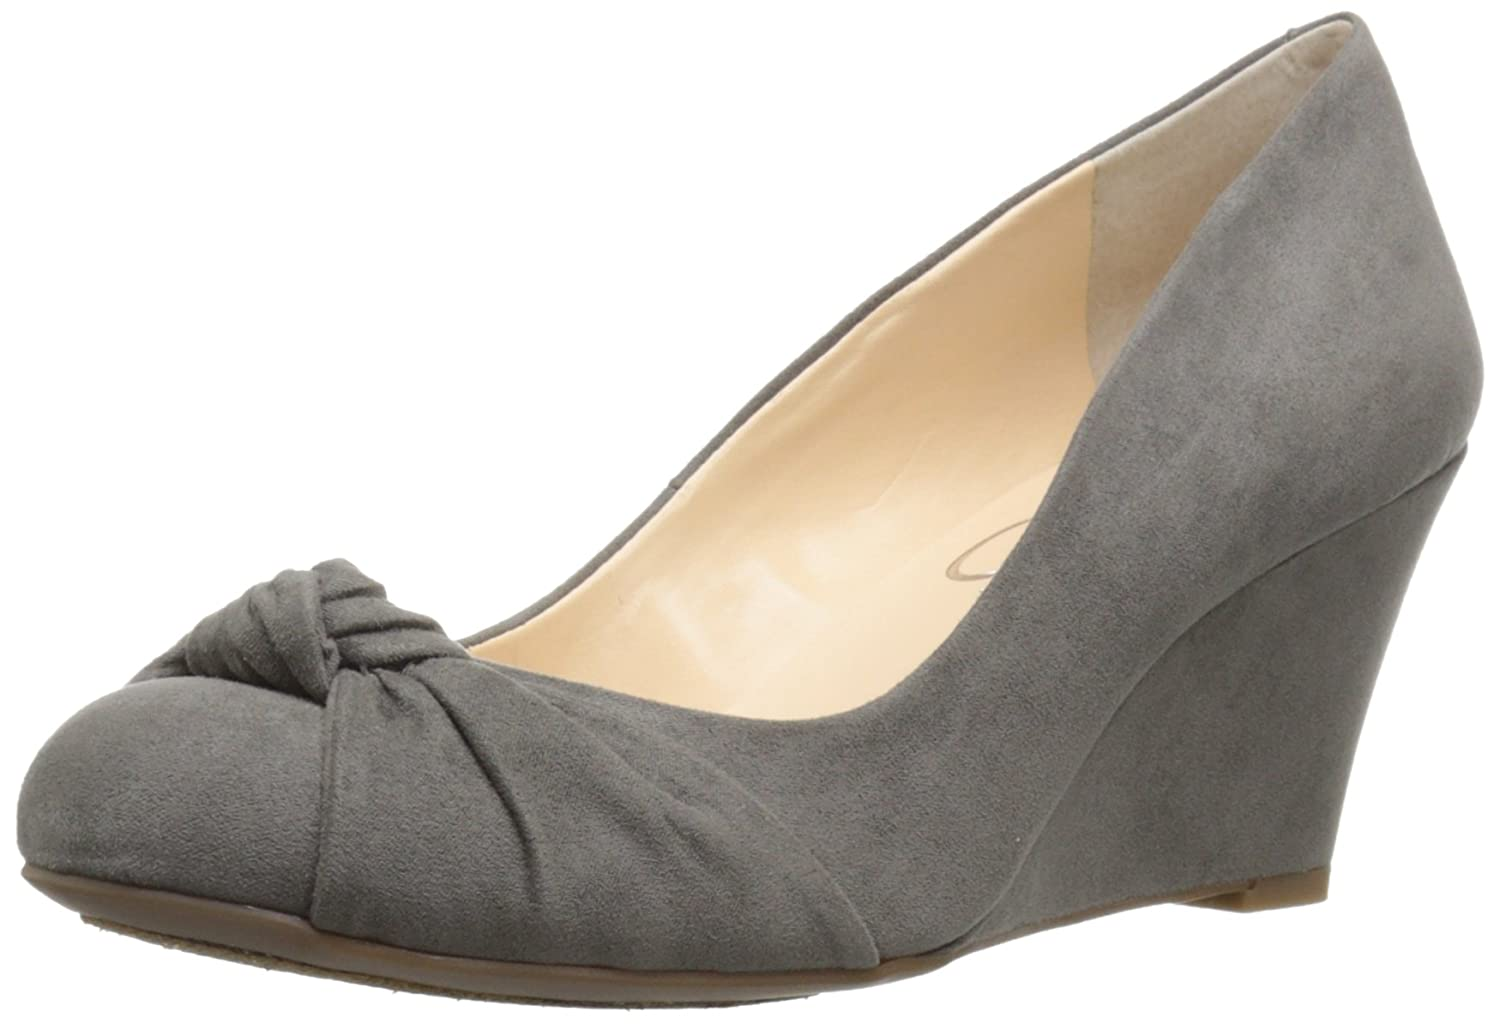 Jessica Simpson Women's Siennah Wedge Pump B01GJ9V8U6 8 B(M) US|Gnocchi Grey